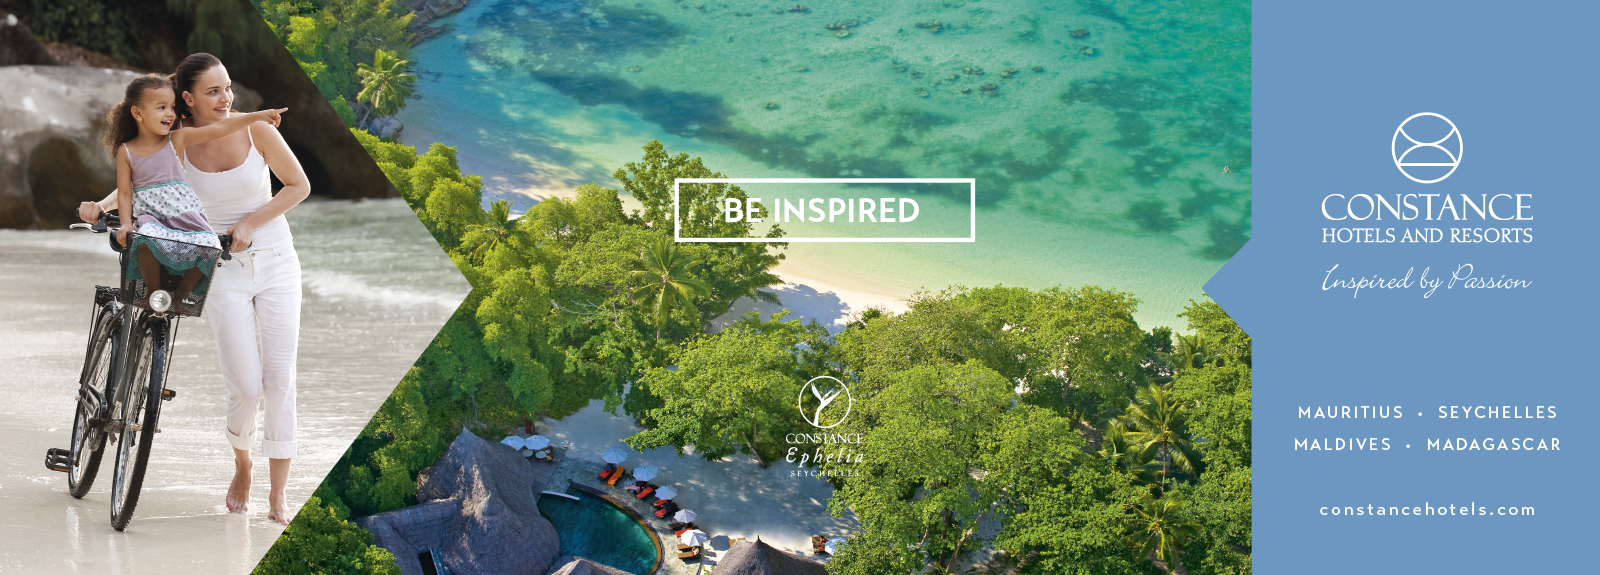 constance-hotels-and-resorts